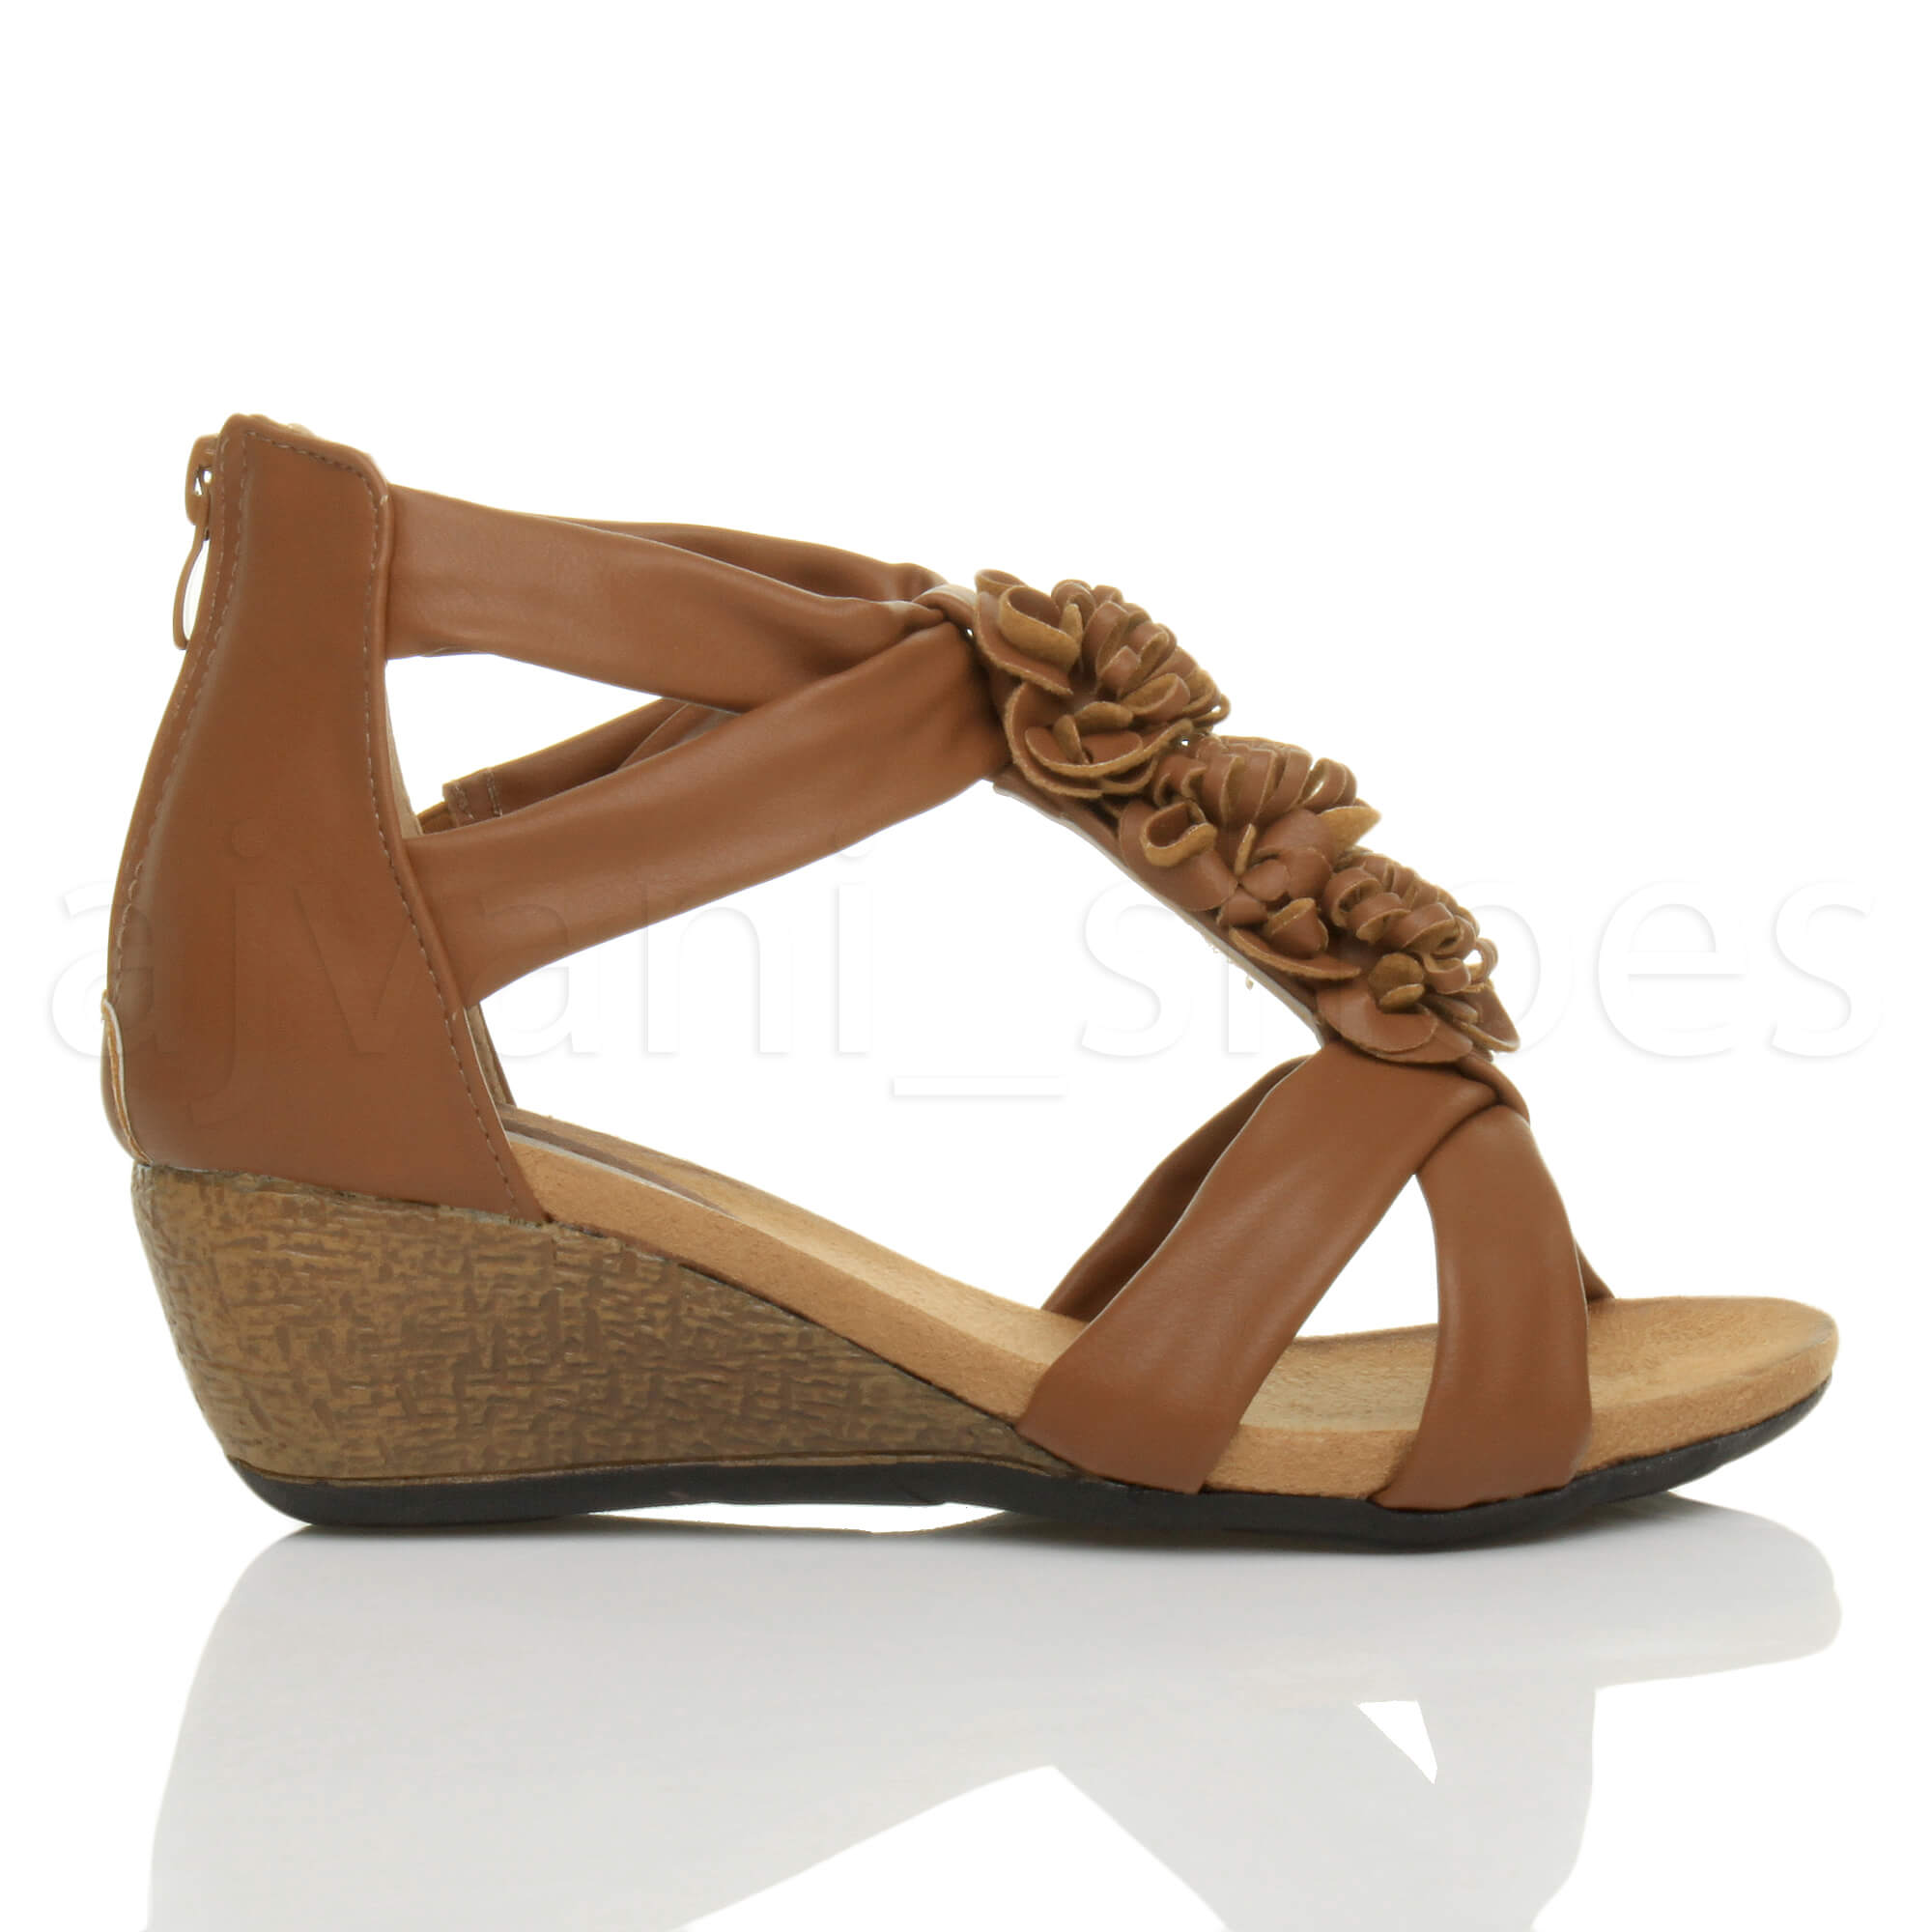 WOMENS-LADIES-LOW-MID-HEEL-WEDGES-PEEPTOE-T-BAR-FLOWER-STRAPPY-SANDALS-SHOE-SIZE